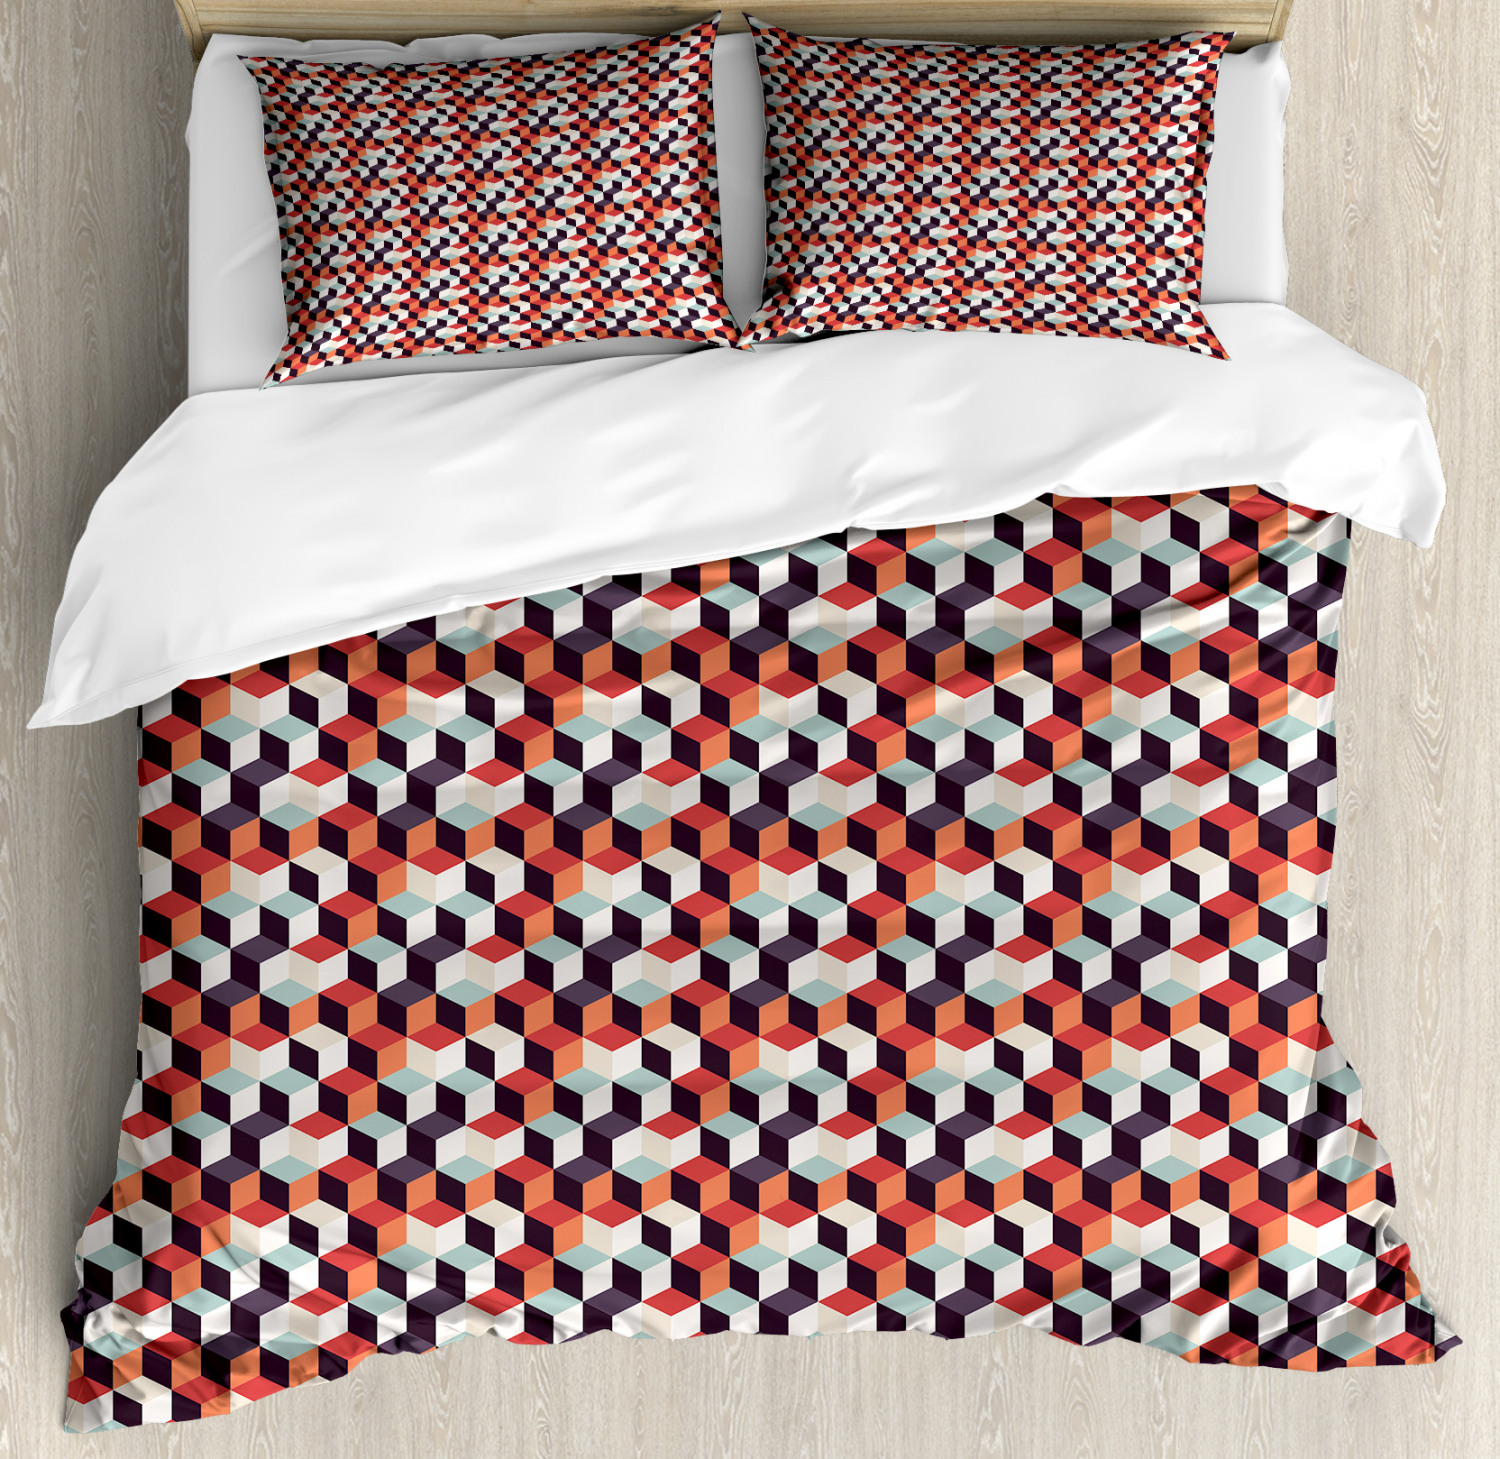 Geometric Duvet Cover Set with Pillow Shams Artsy Squares Design Print